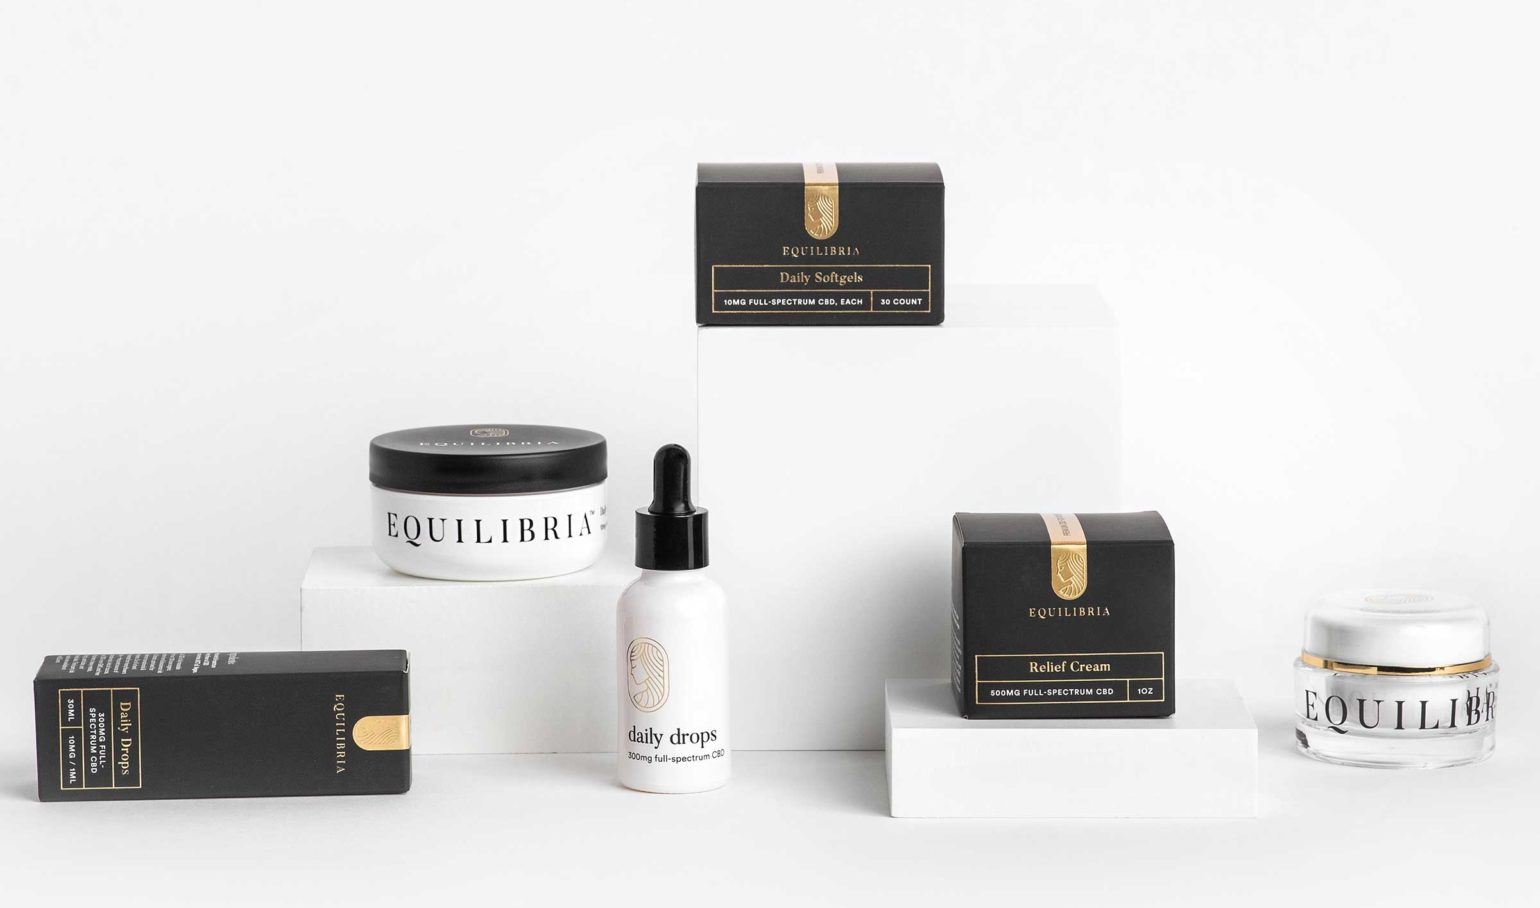 Brilliance Box Best-Seller Three full-spectrum CBD oil products